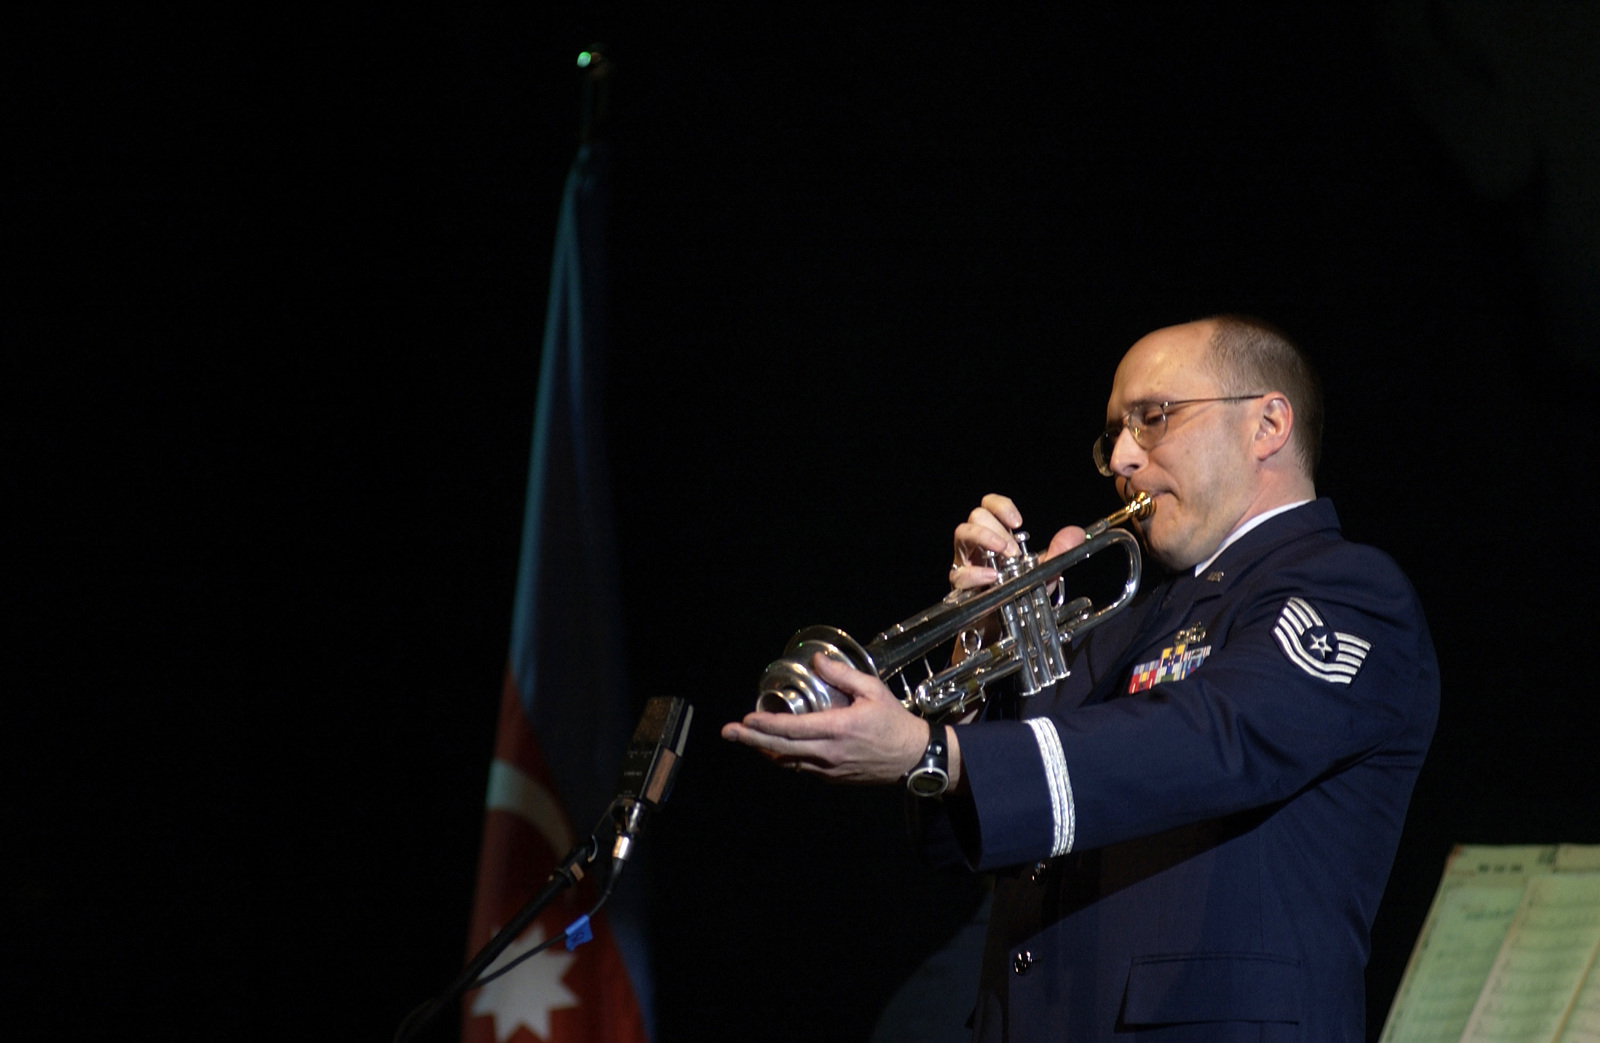 Technical Sergeant (TSGT) Scott Vignassi with the United States Air Force in Europe (USAFE) Jazz Band, The Ambassadors, performs a Trumpet mute solo during the Caspian Jazz and Blues Festival in Azerbaijan